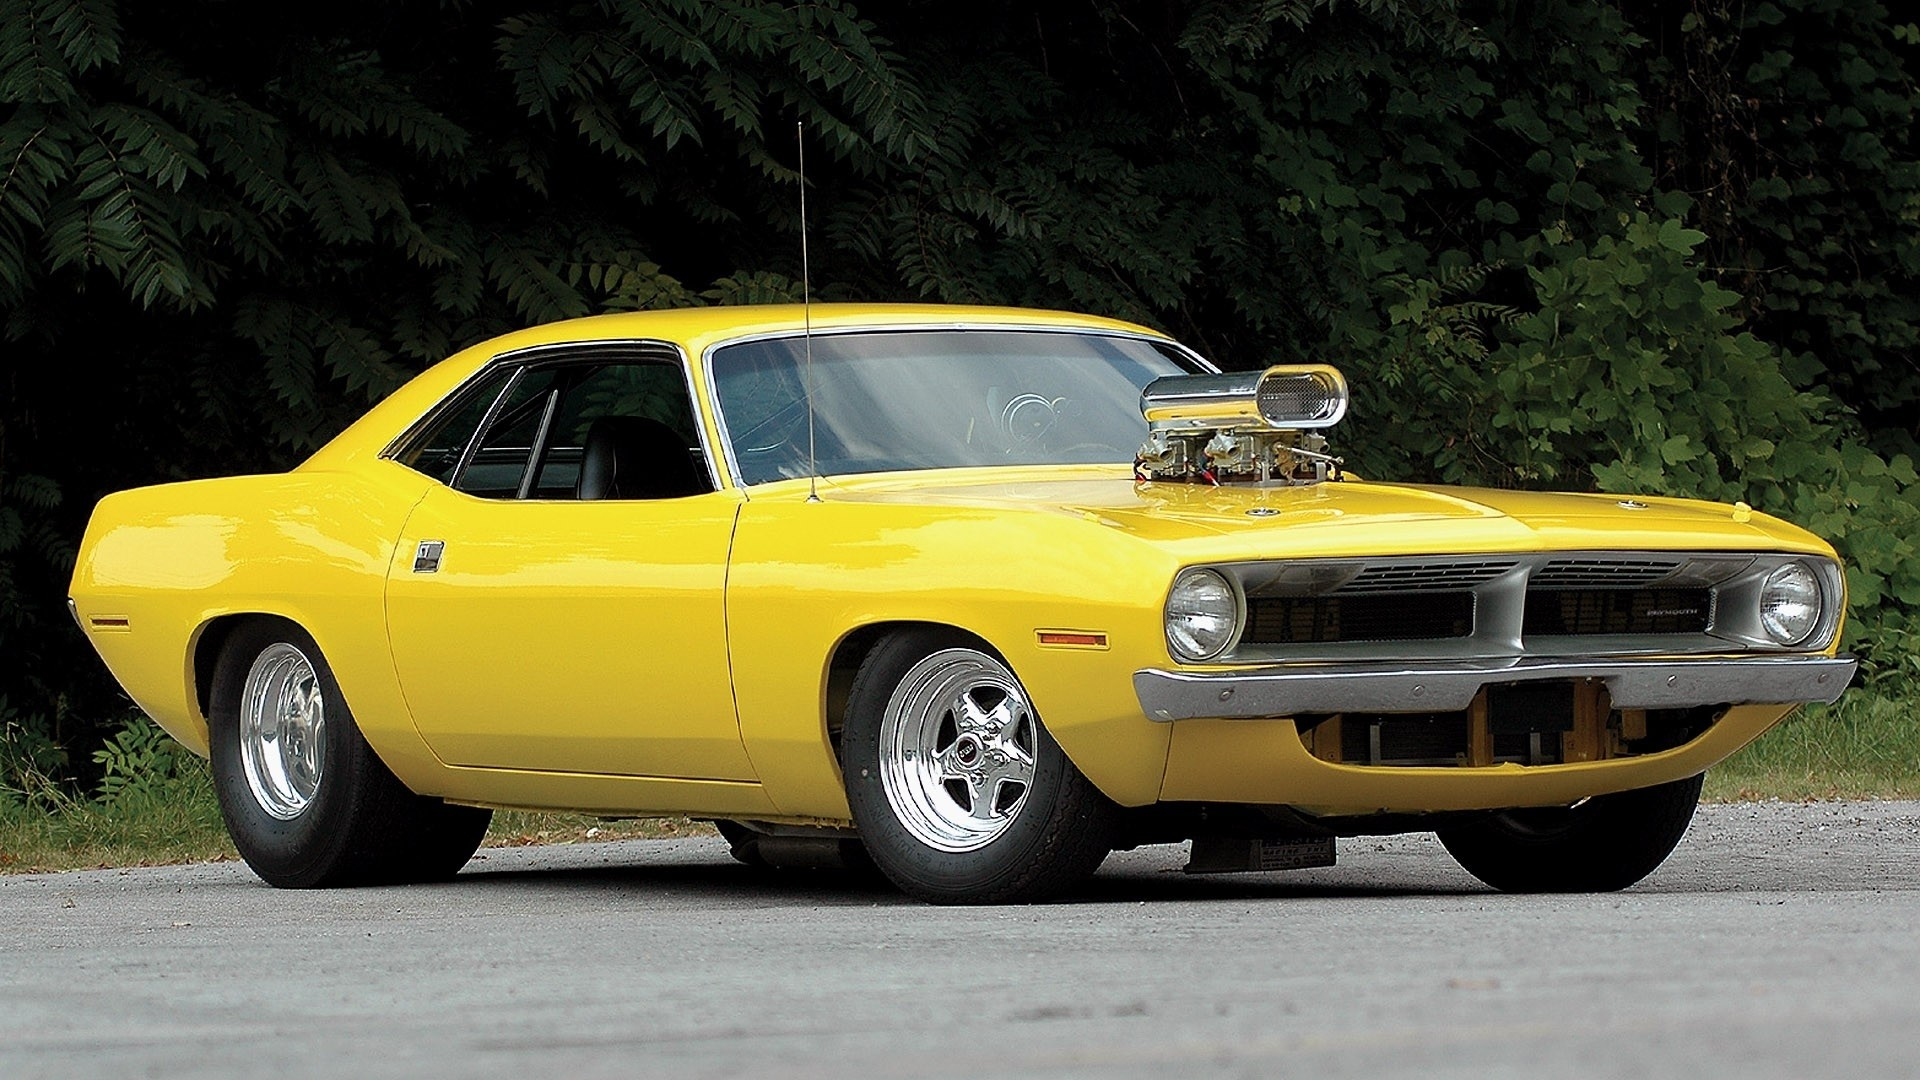 1920x1080 yellow Muscle Car | Plymouth barracuda hot rod tuning yellow classic muscle  car wallpaper .